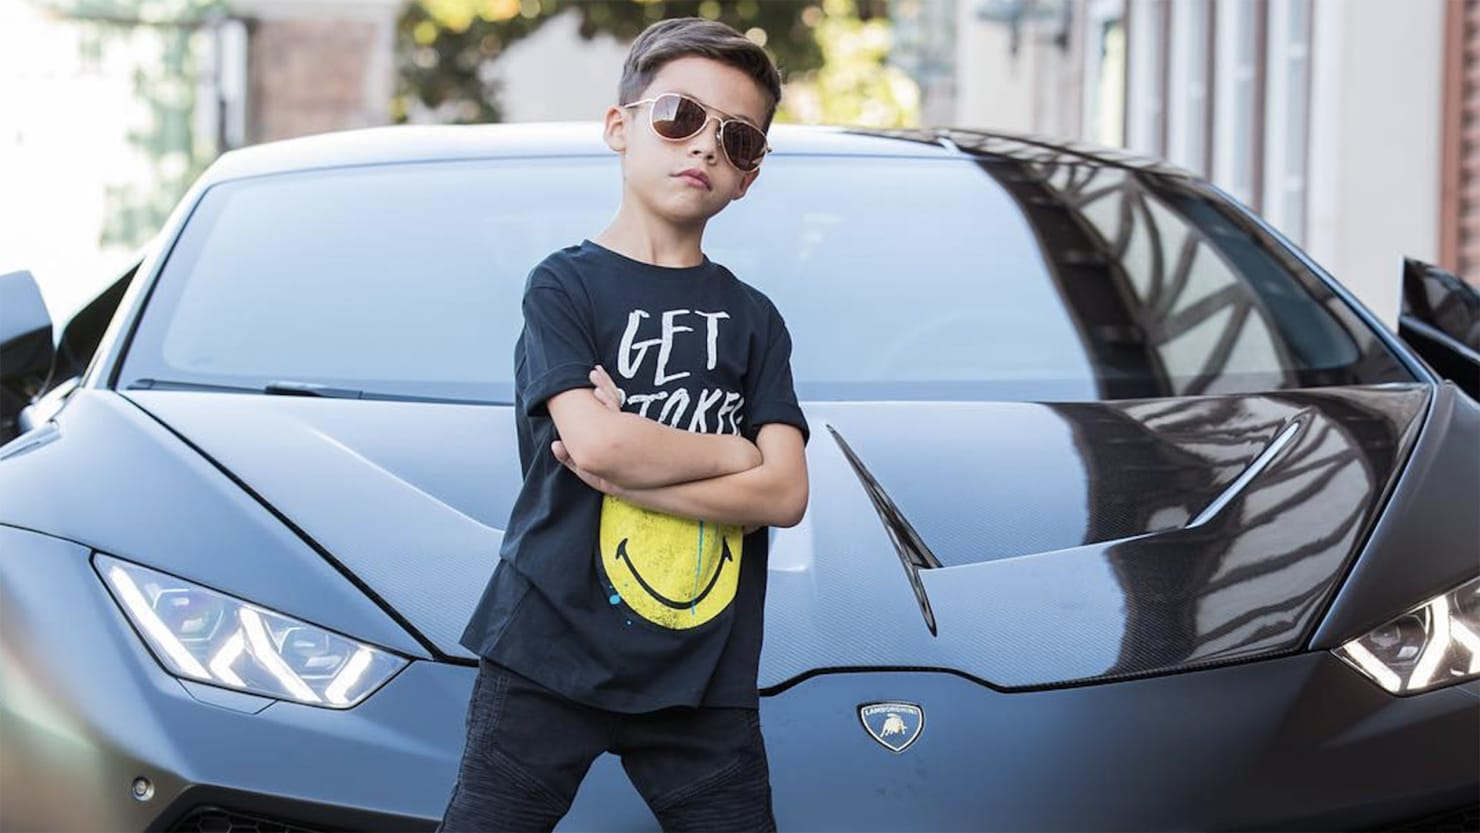 Ben Hampton Has 670,000 Followers on Instagram. He's Only 6 Years Old.